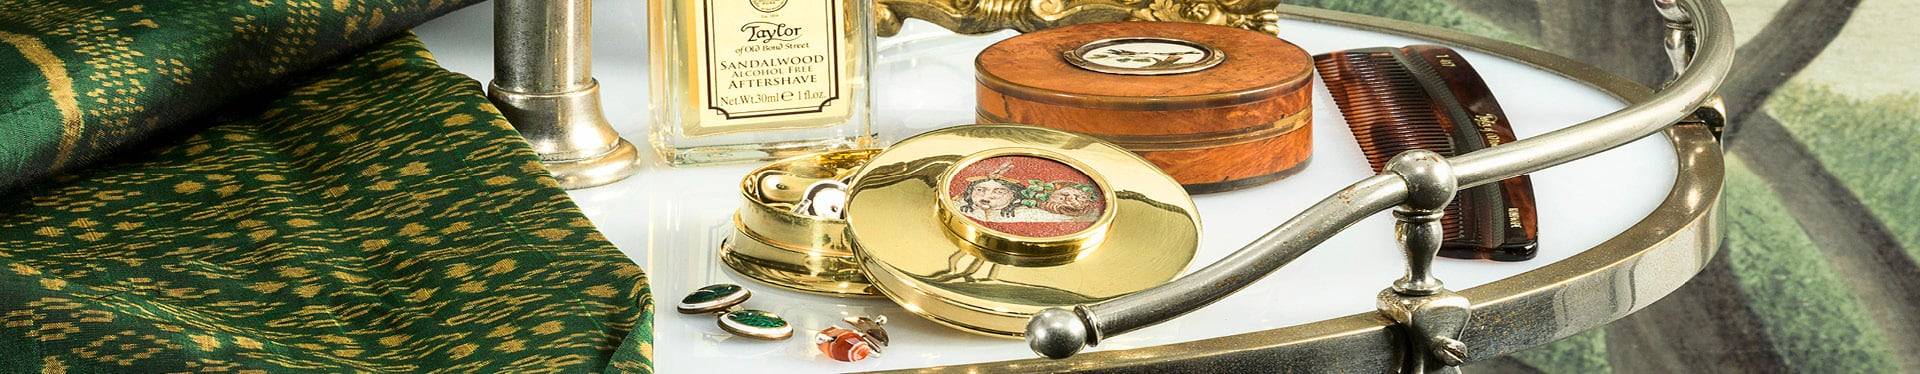 gold-boxes-departments-christies_109_1_20191119112453.jpg